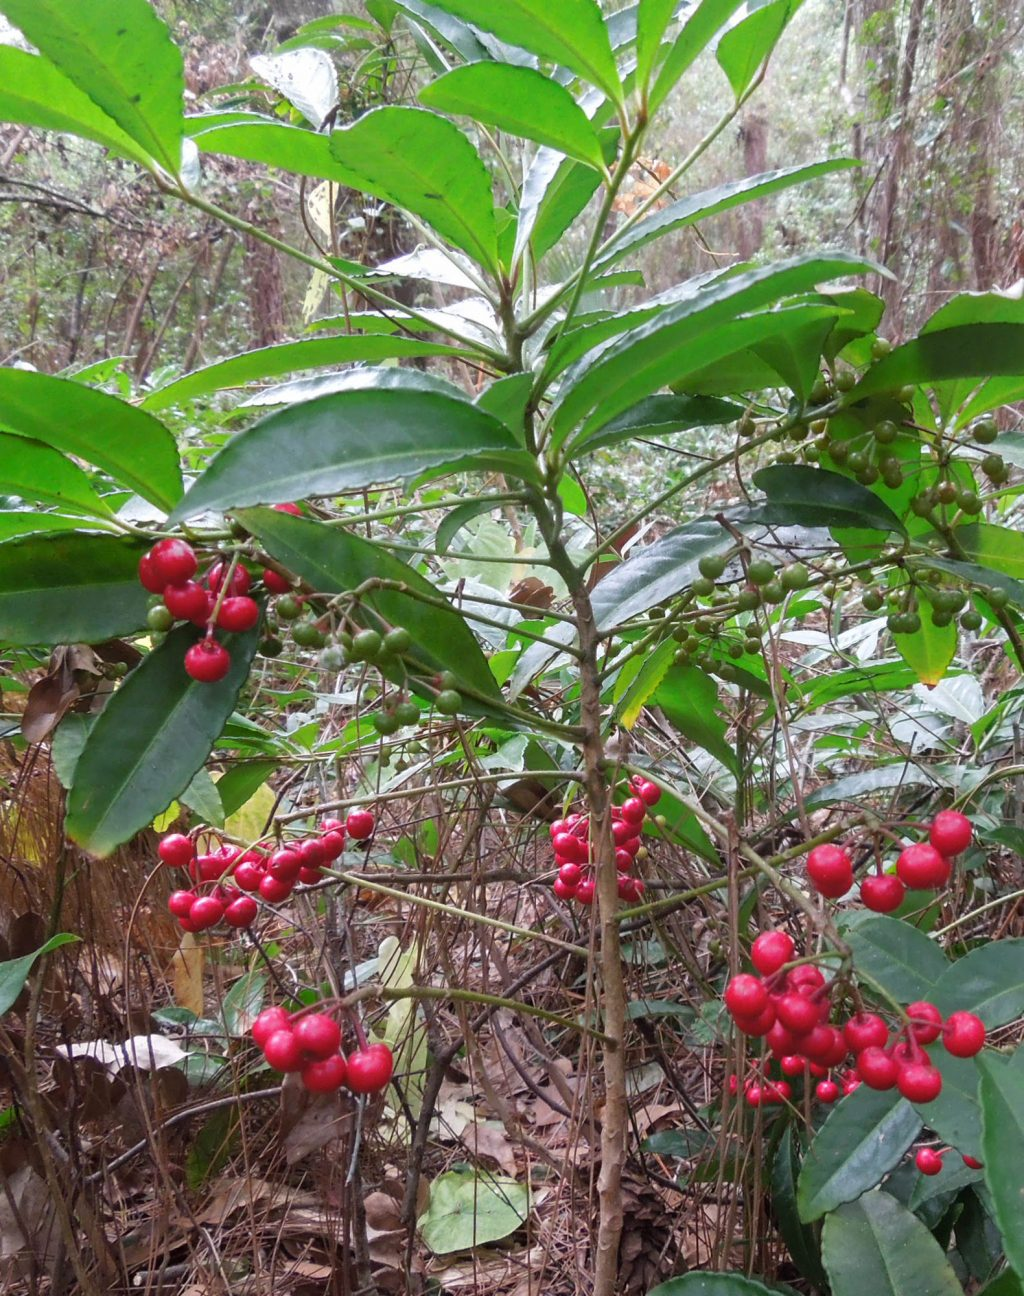 plant with dark leaves on top and sprigs of red berries below